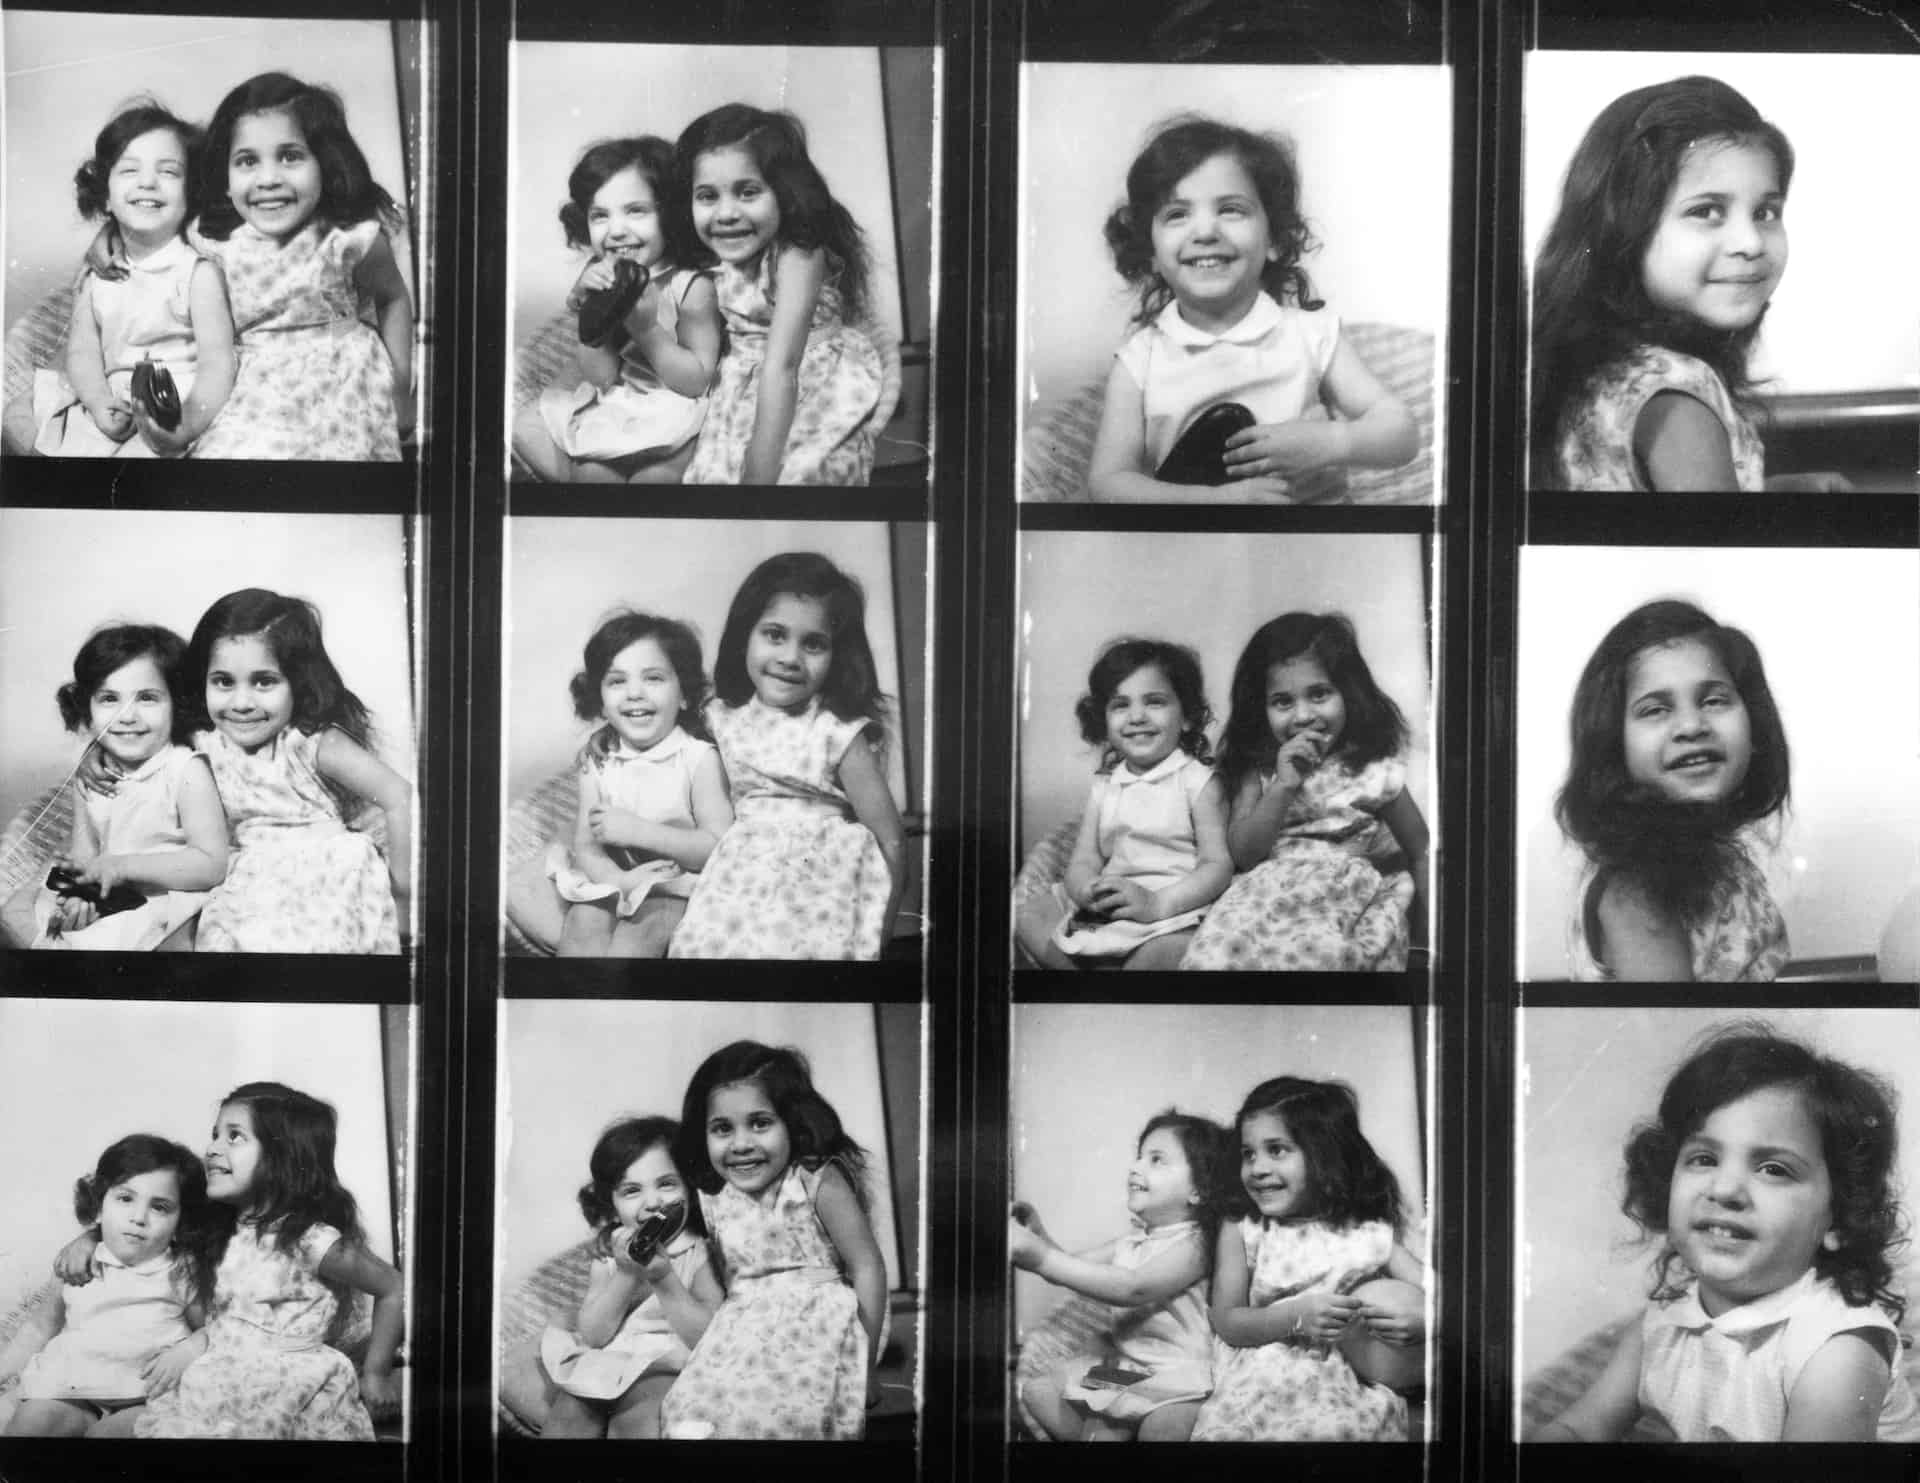 Studio shot of Marianne (left) and her sister Vee, taken in the early 1960s